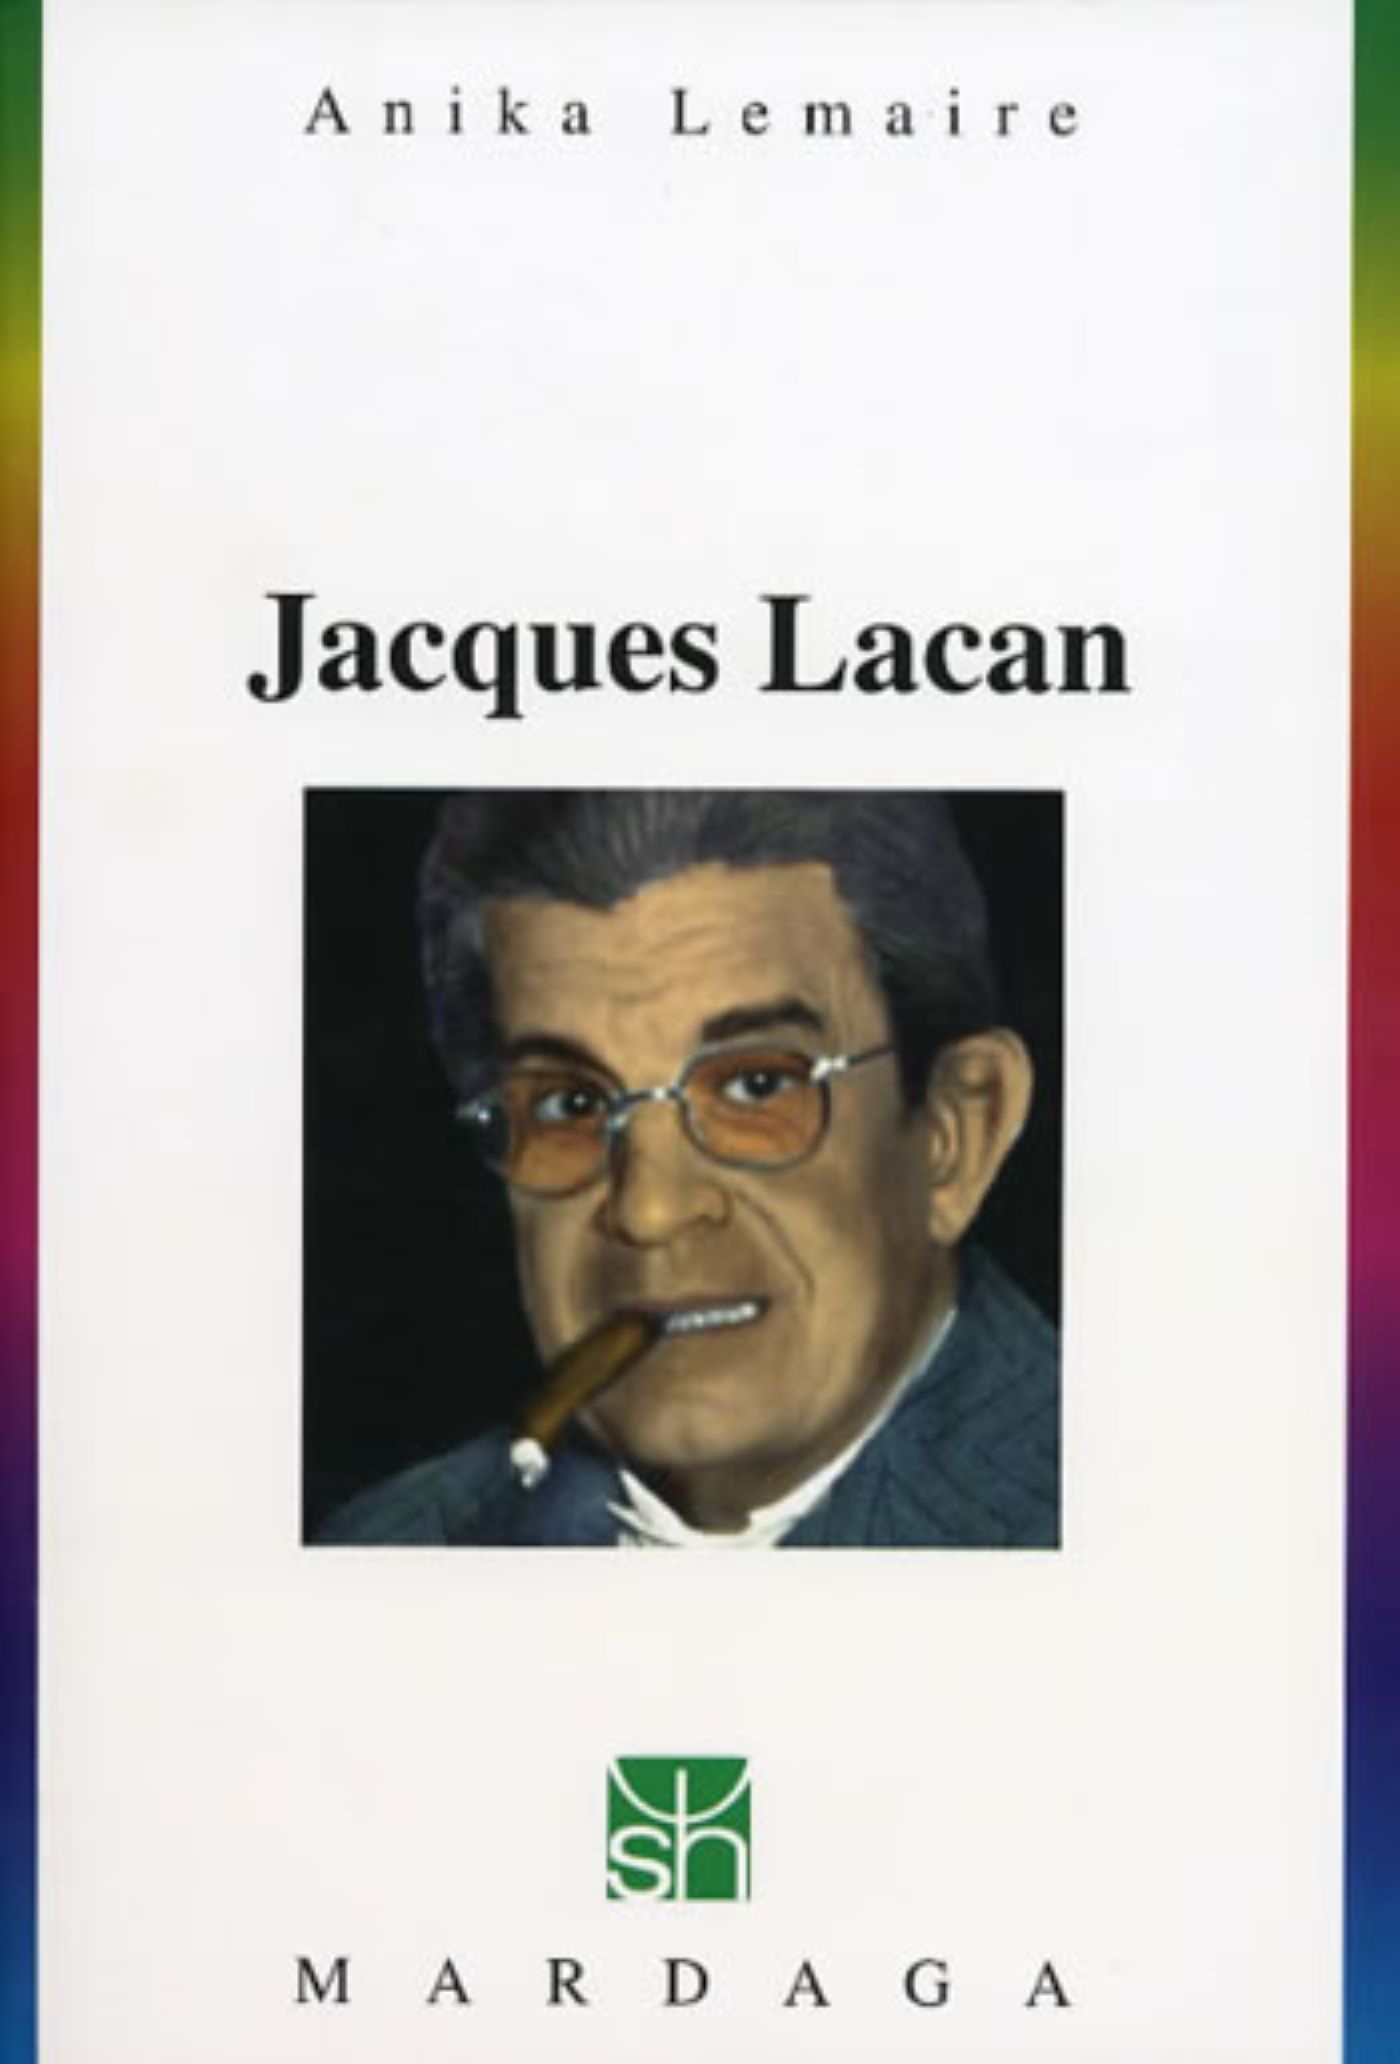 JACQUES LACAN N71